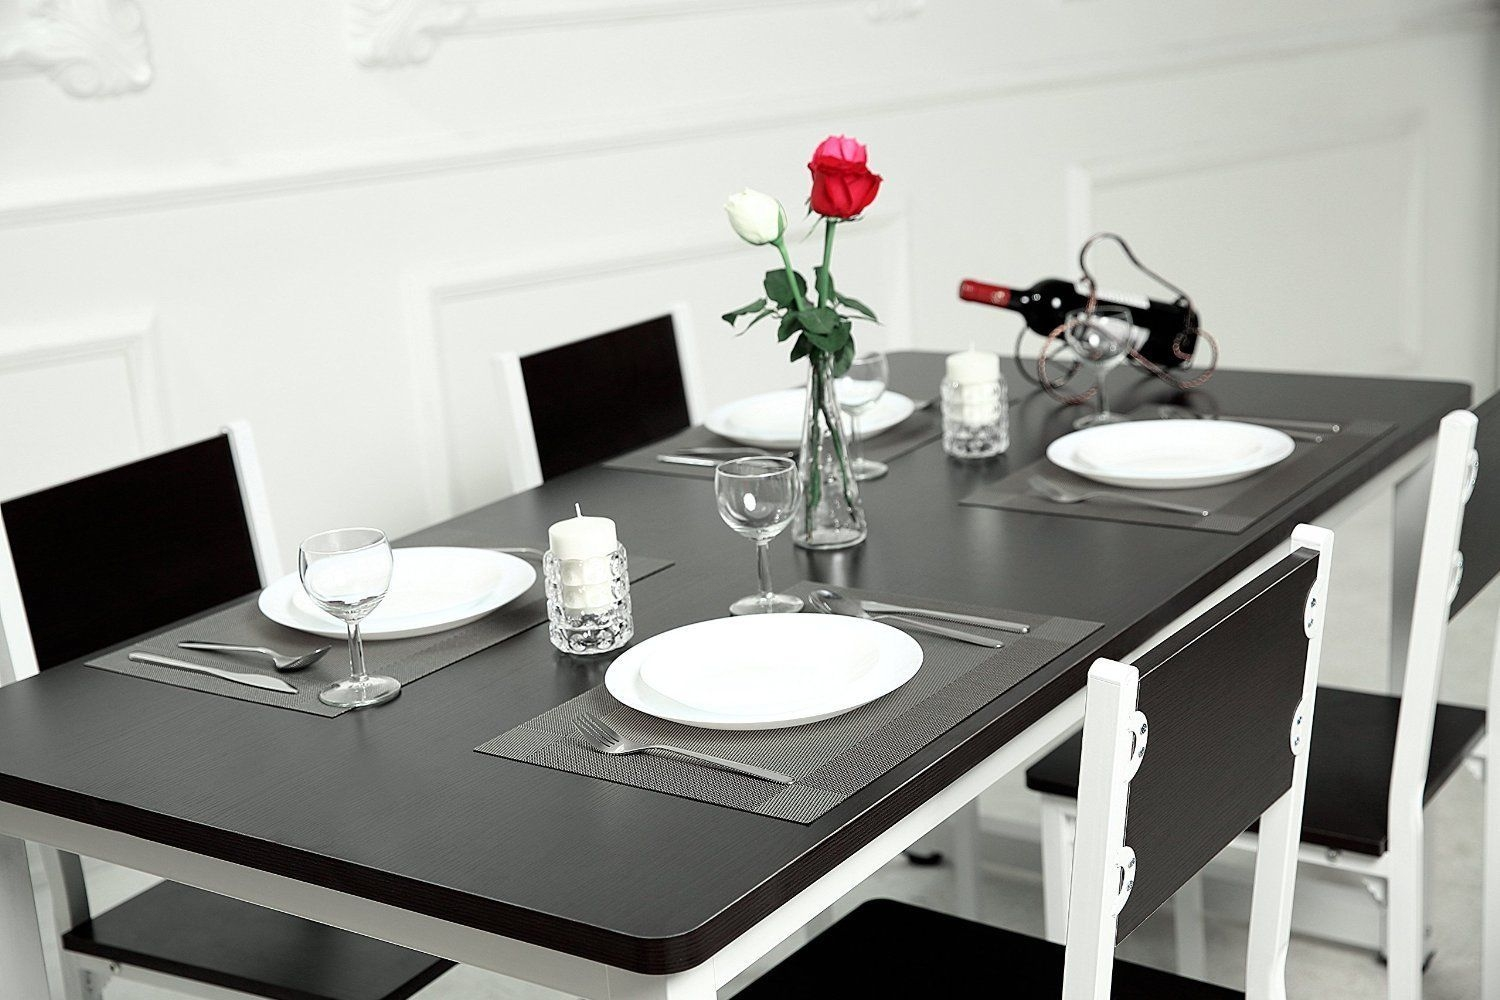 borlan vinyl placemats washable dining table mats heat resistant